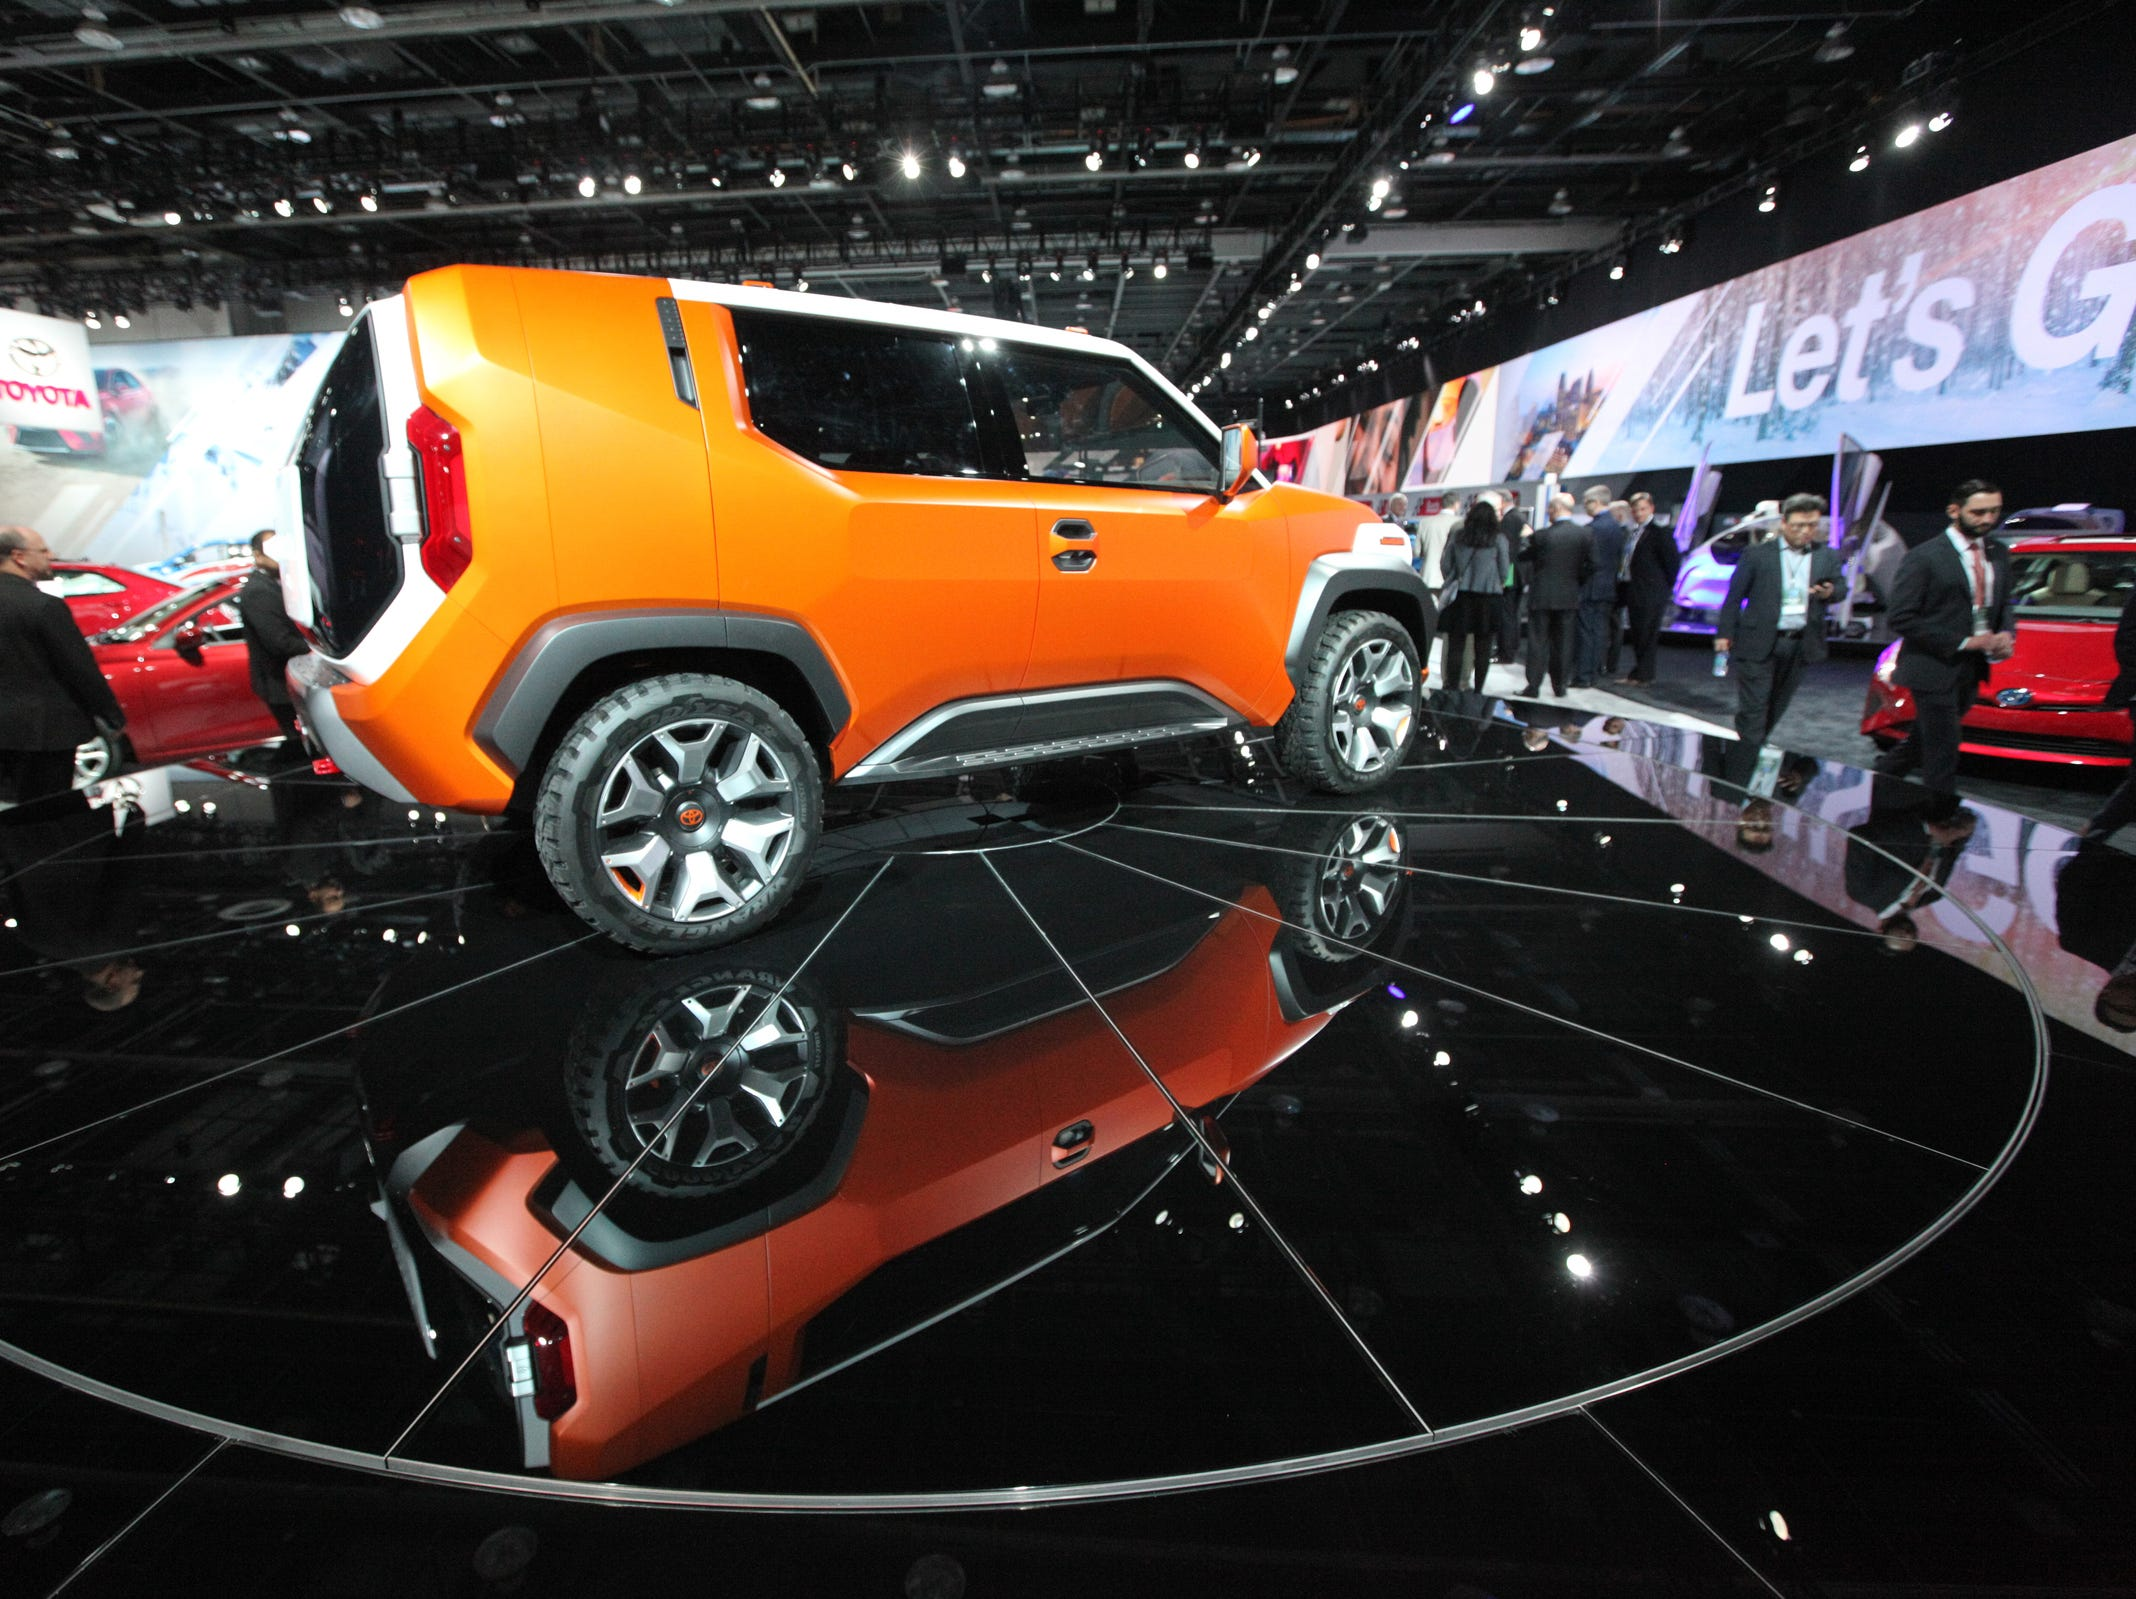 Toyota FT-4X Concept is seen on the floor during the 2018 North American International Auto Show held at Cobo Center in downtown Detroit on Tuesday, Jan. 16, 2017.